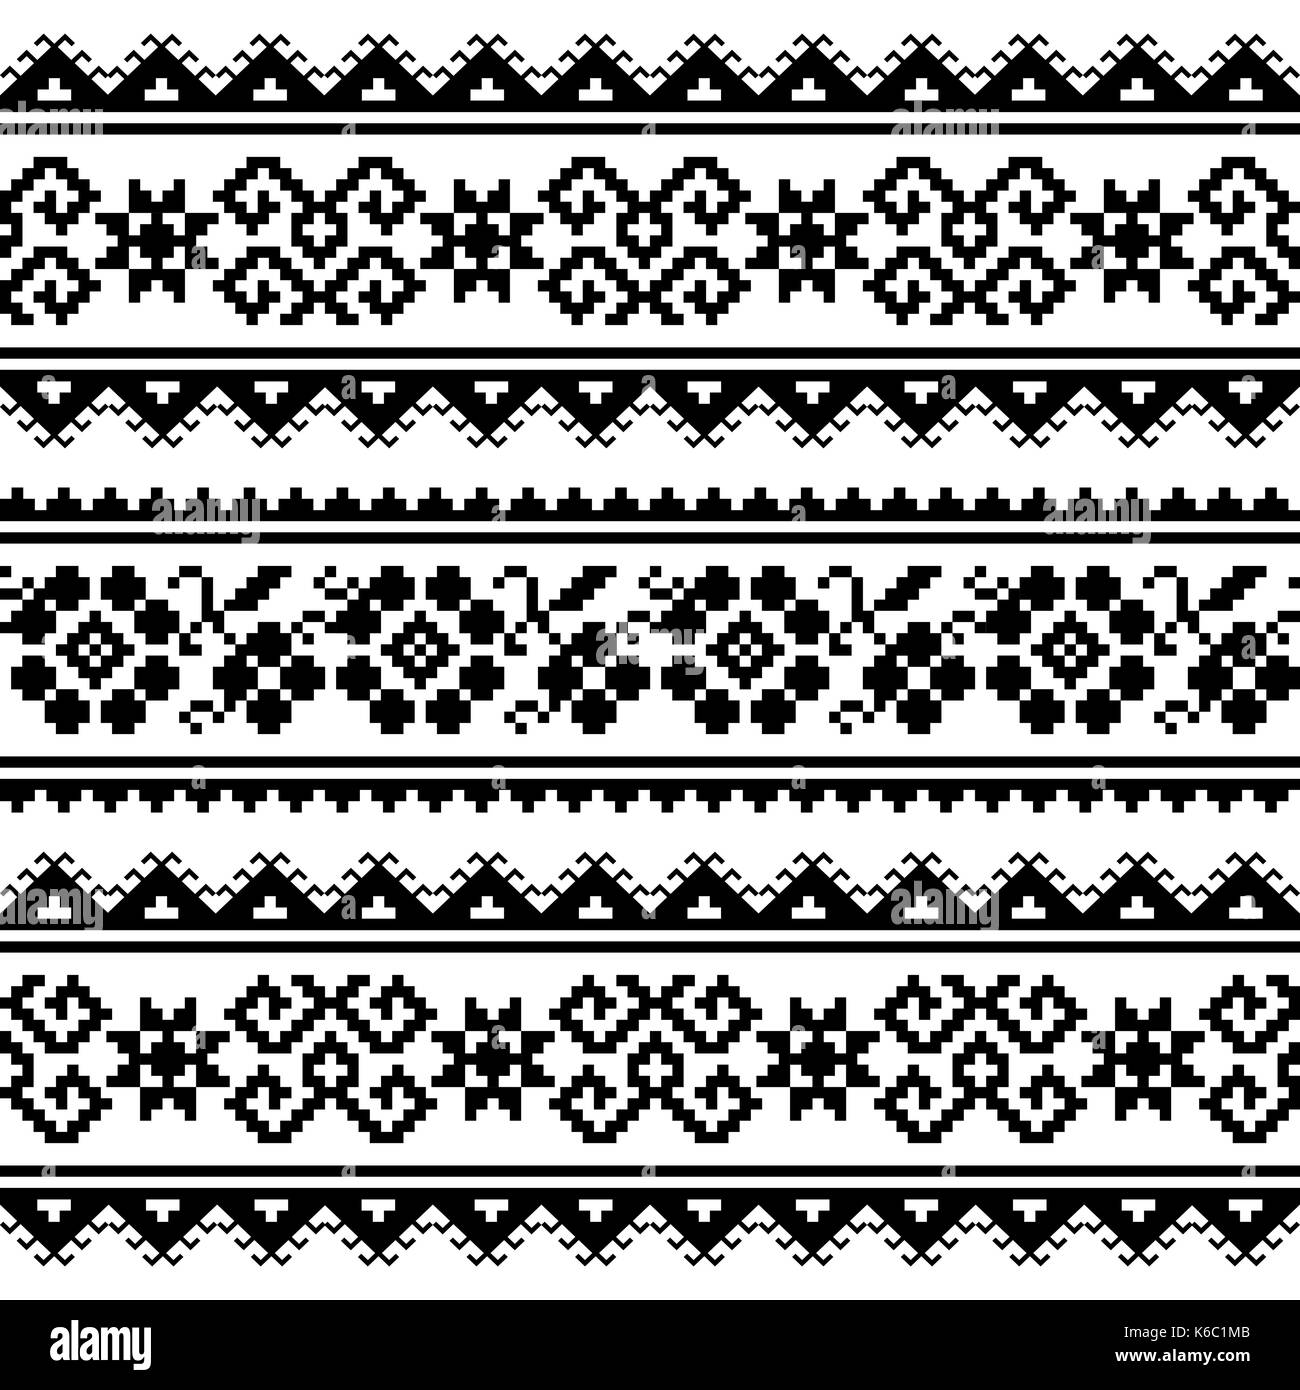 Ukrainian or Belarusian folk art embroidery pattern or print in black and white - Stock Image